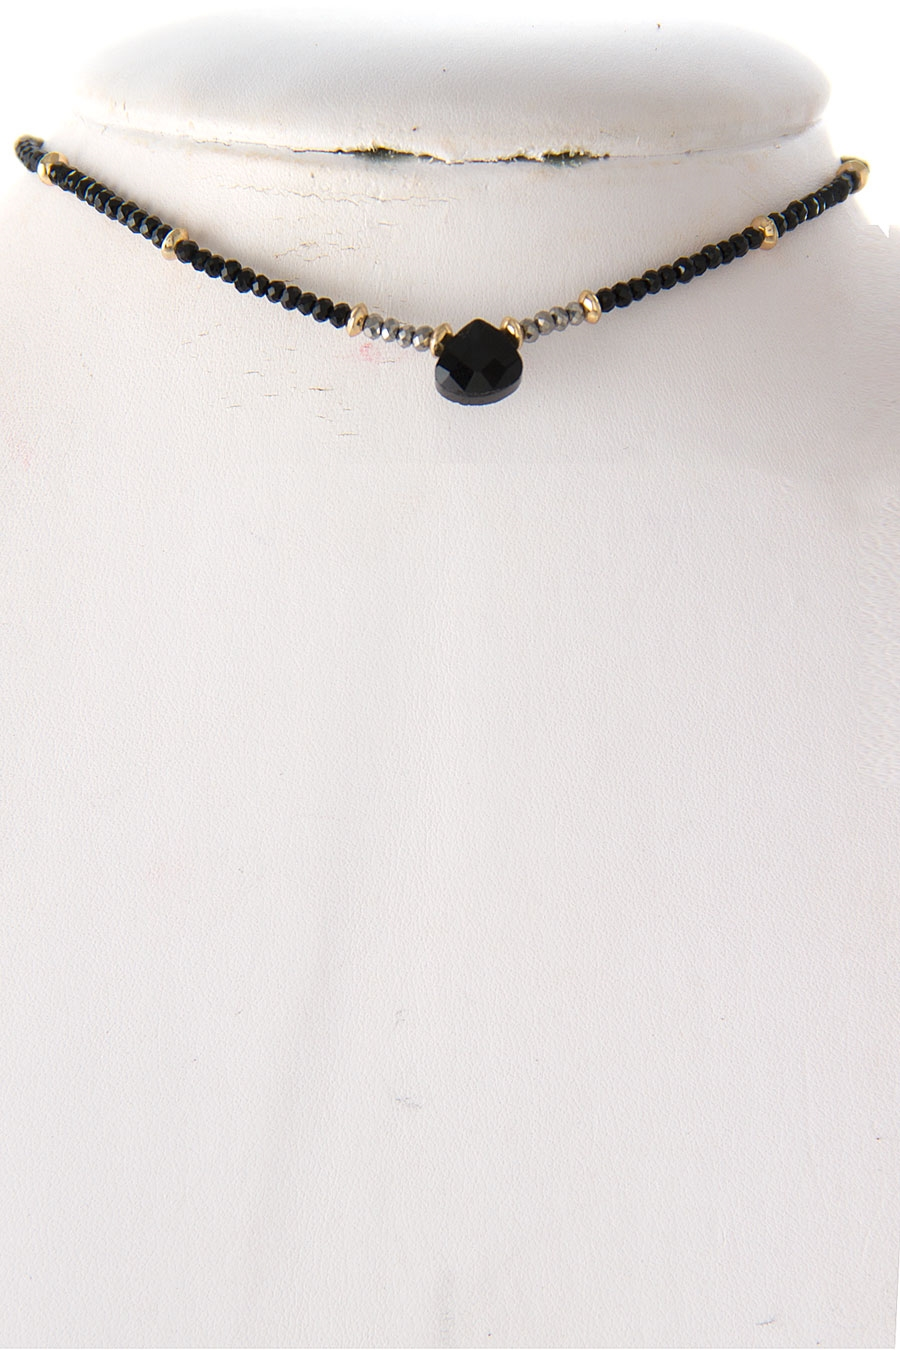 GLASS DANGLE CHOKER NECKLACE - orangeshine.com